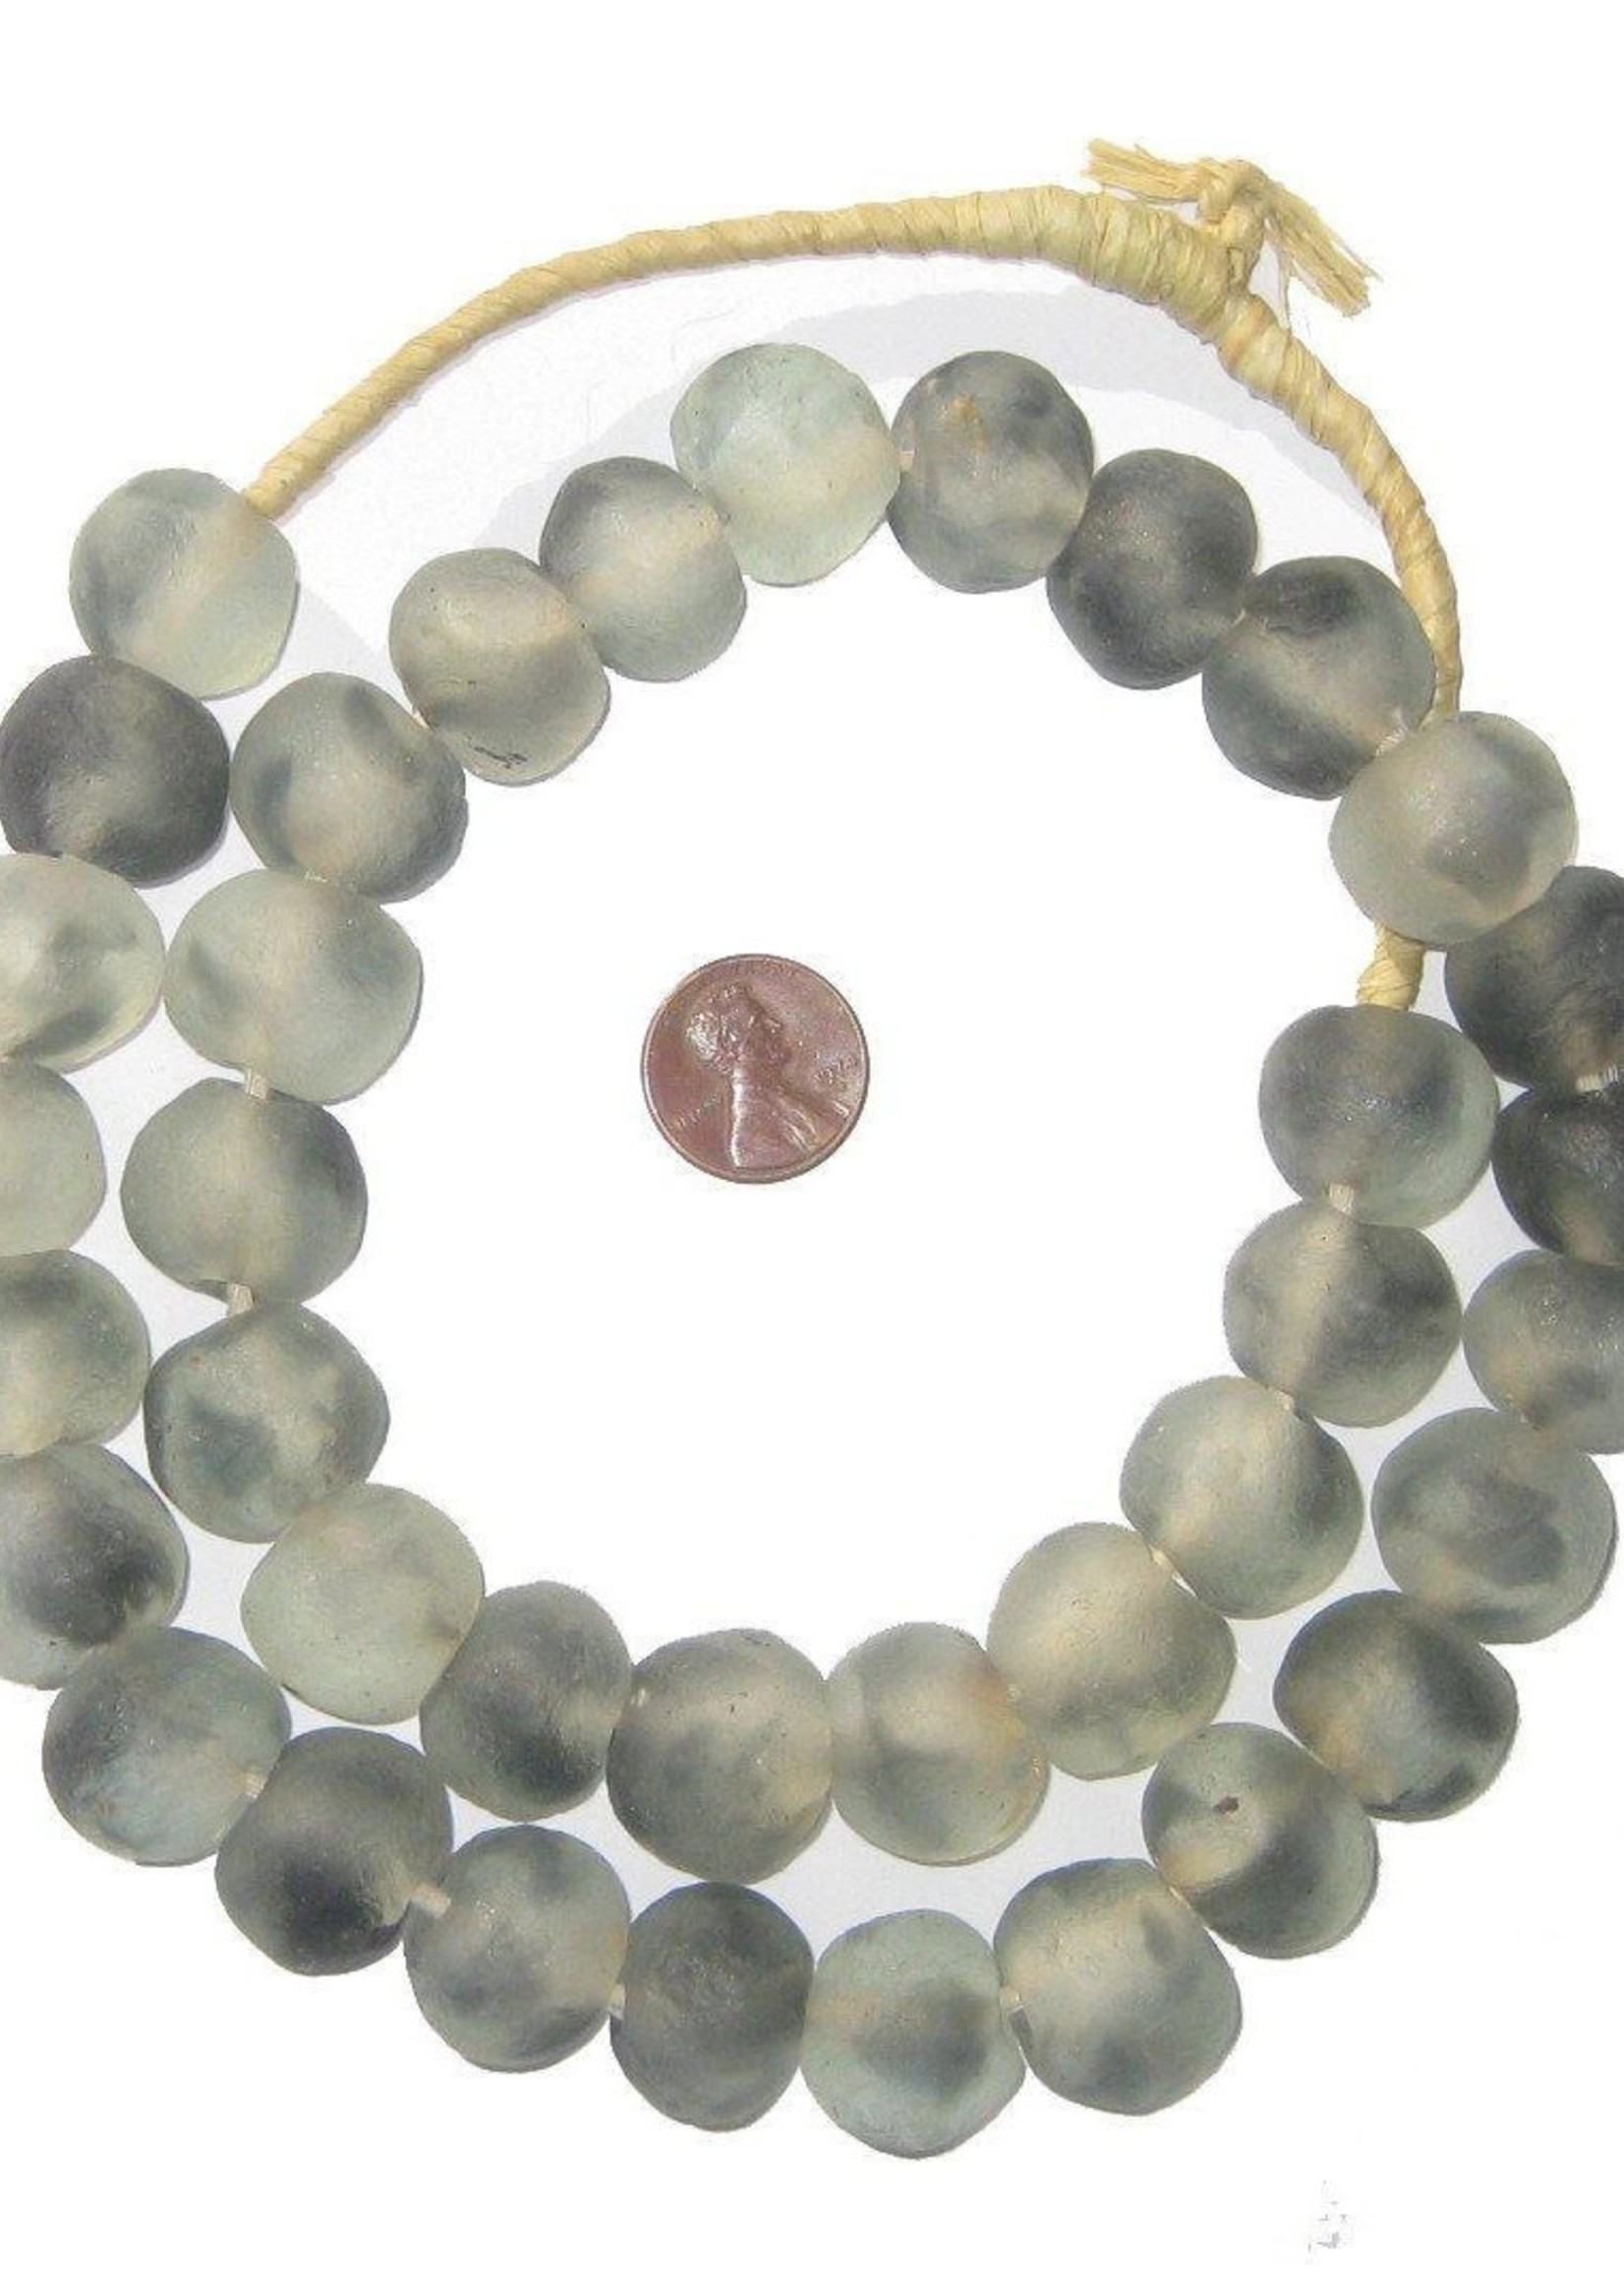 18 mm Recycled Glass Beads